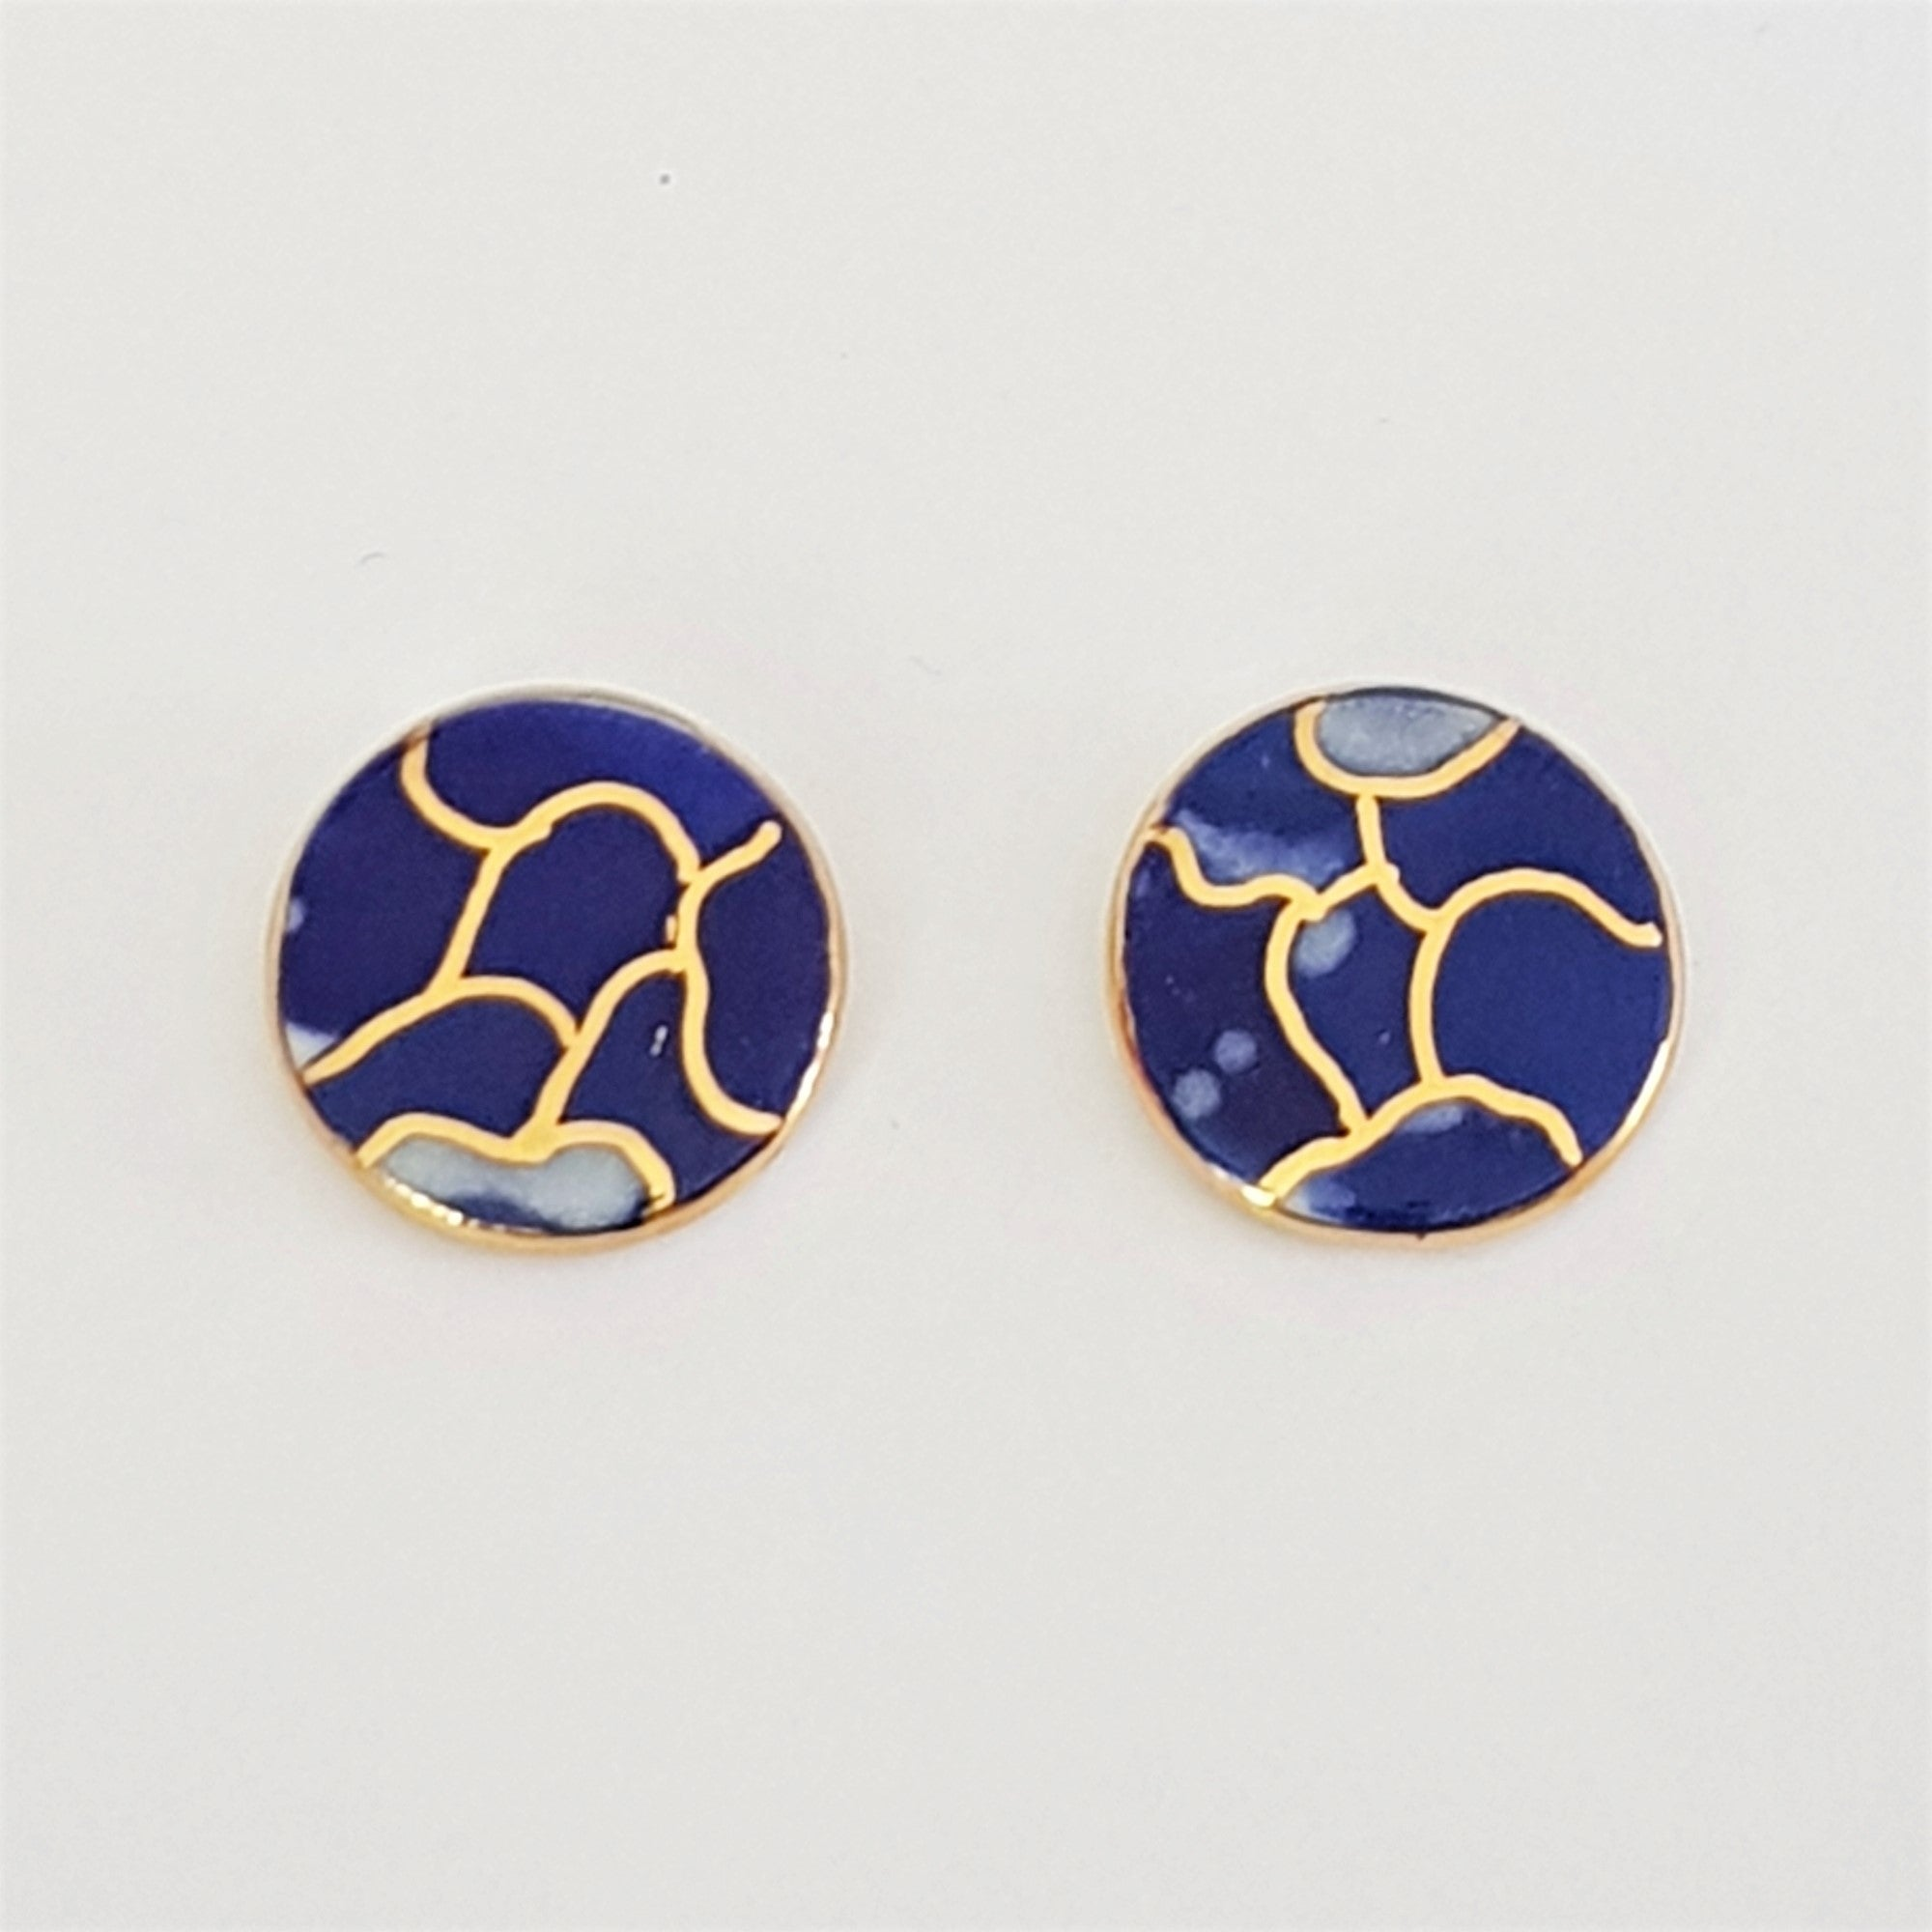 indigo and gold round porcelain studs